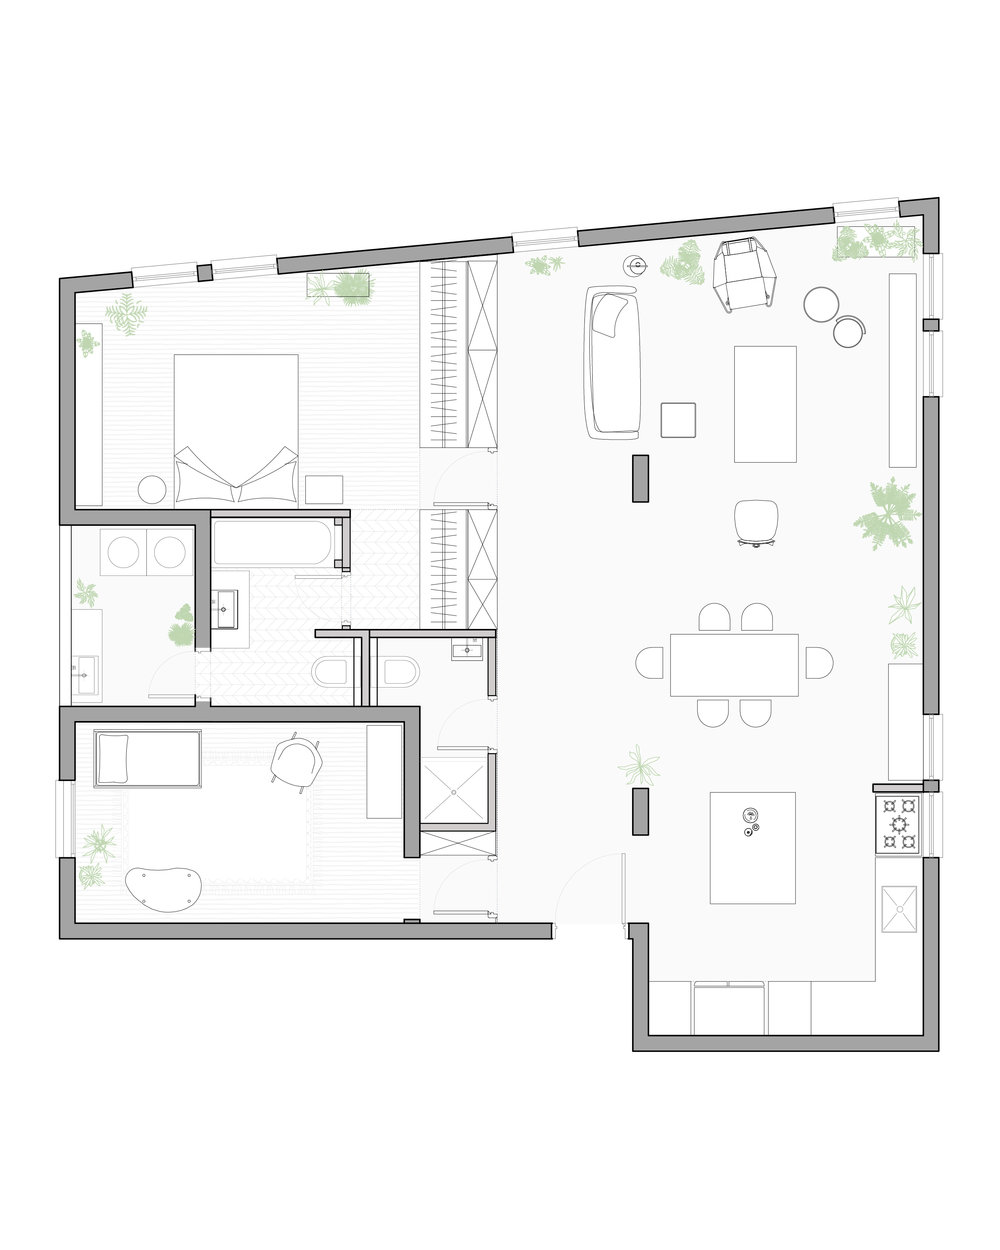 /Users/noa/Architecture/Personal/יהודה מרגוזה 31/dwg/